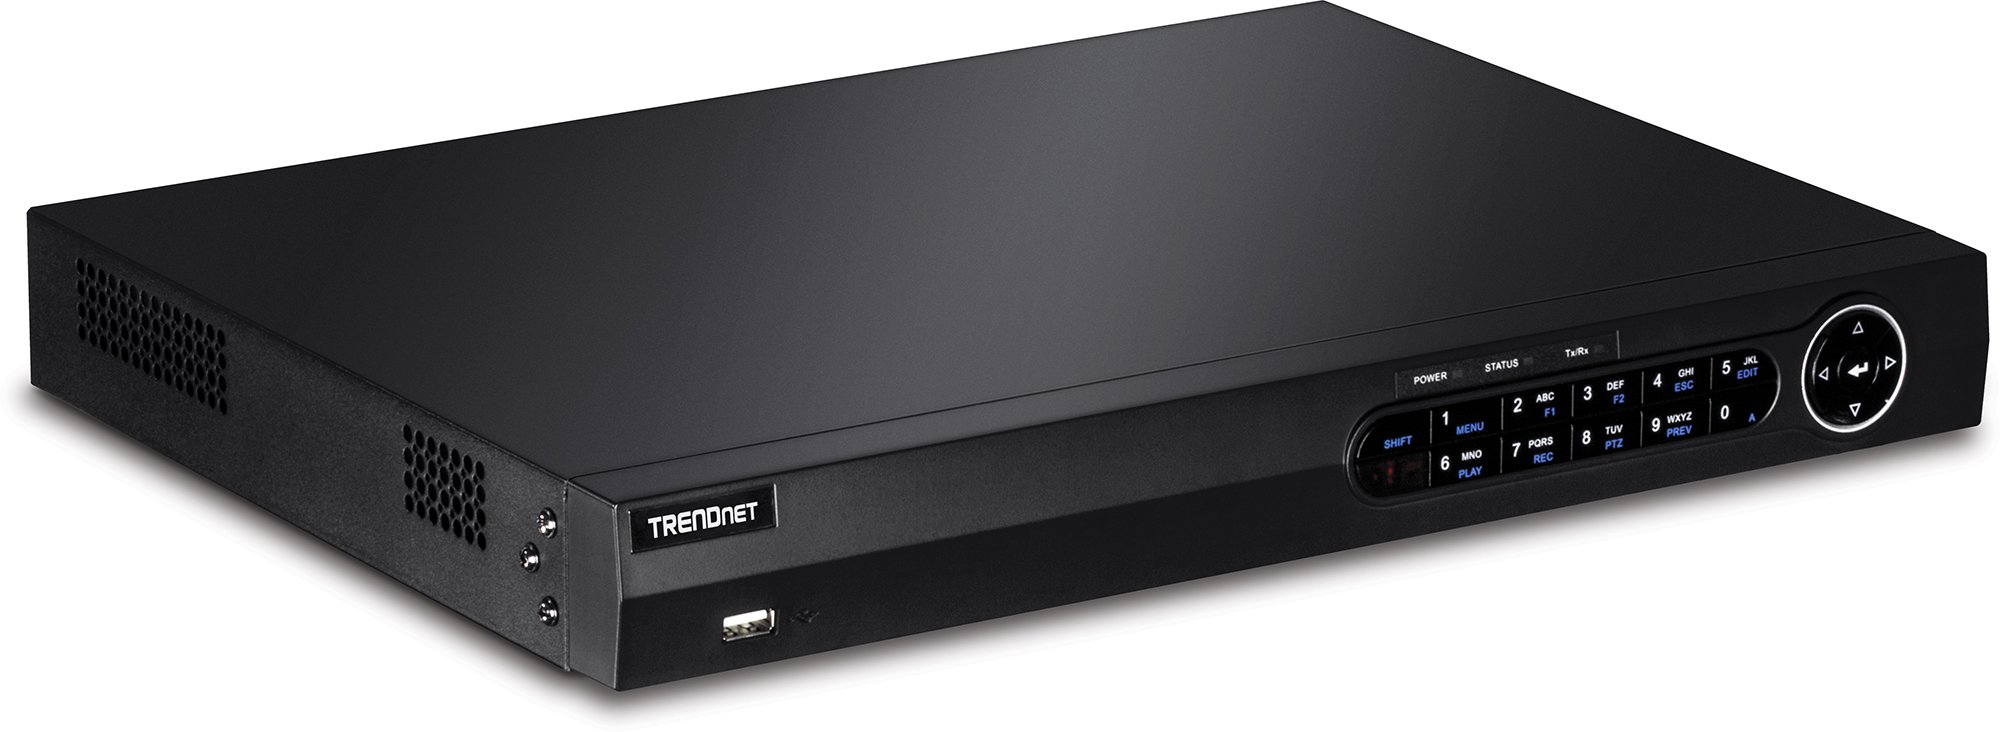 TRENDnet 8-Channel 1080p HD PoE+ Network Video Recorder, 2 SATA II Bays for up to 12TB storage, Easy Install, HDD, DNS, IPv6 Compliant, ONVIF, Rack Mount Hardware Included, TV-NVR208